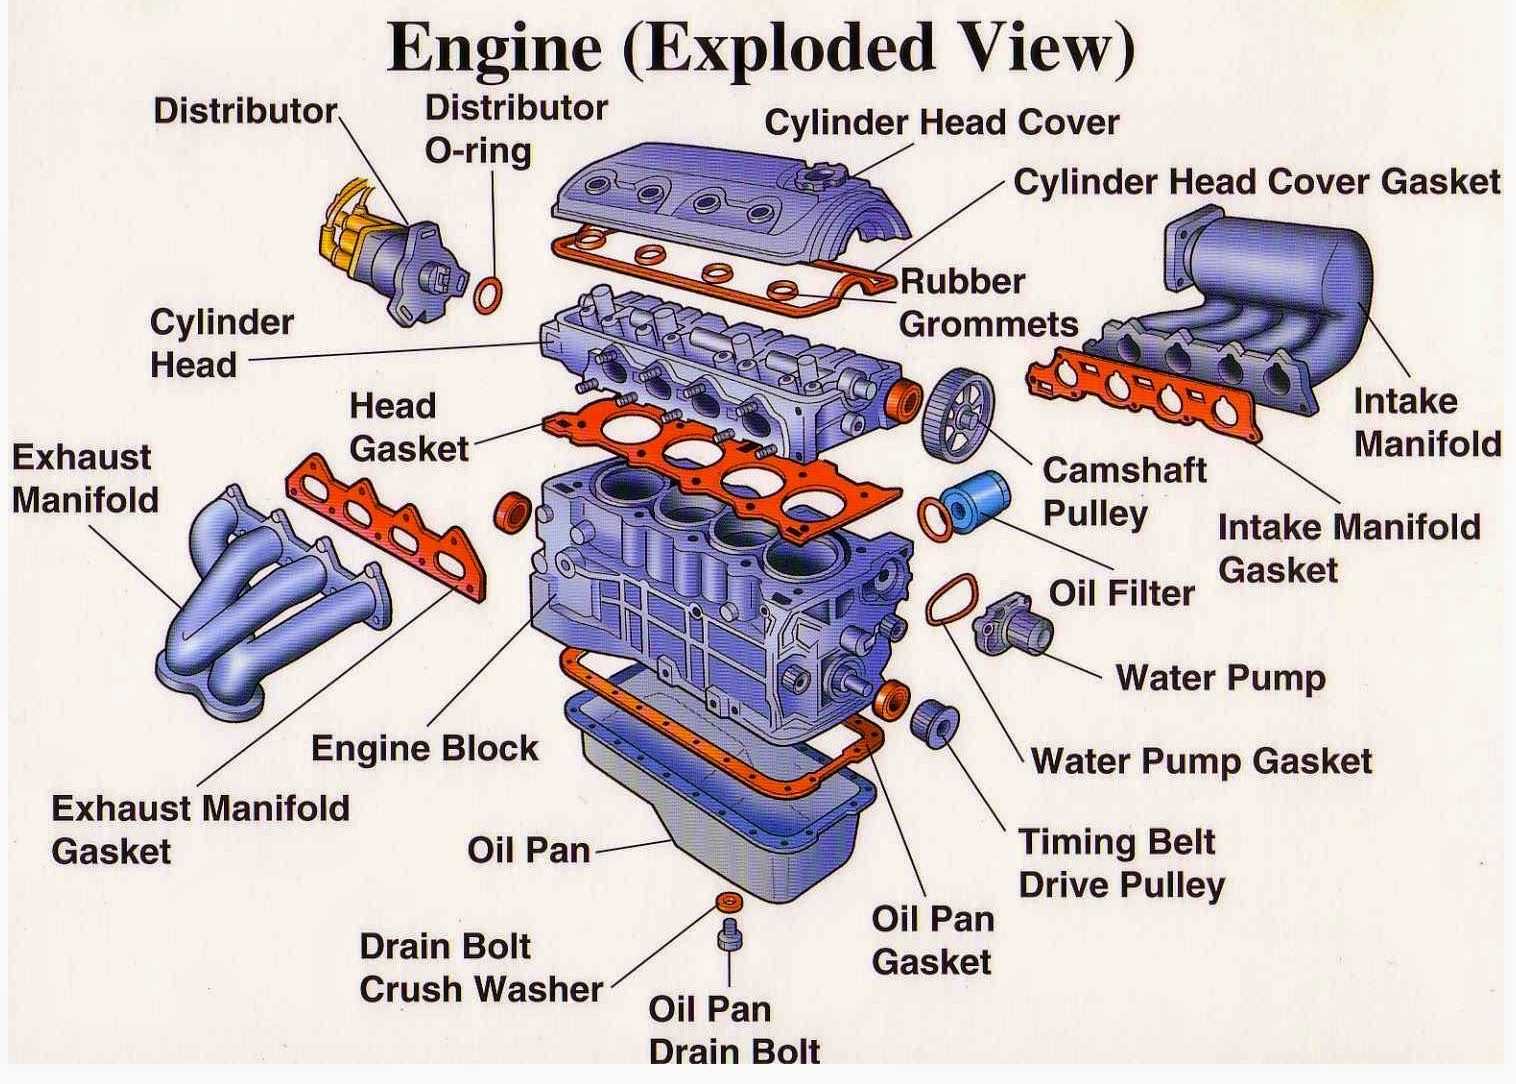 Engine Parts Exploded View Electrical Engineering World Engineering Automotive Mechanic Car Engine